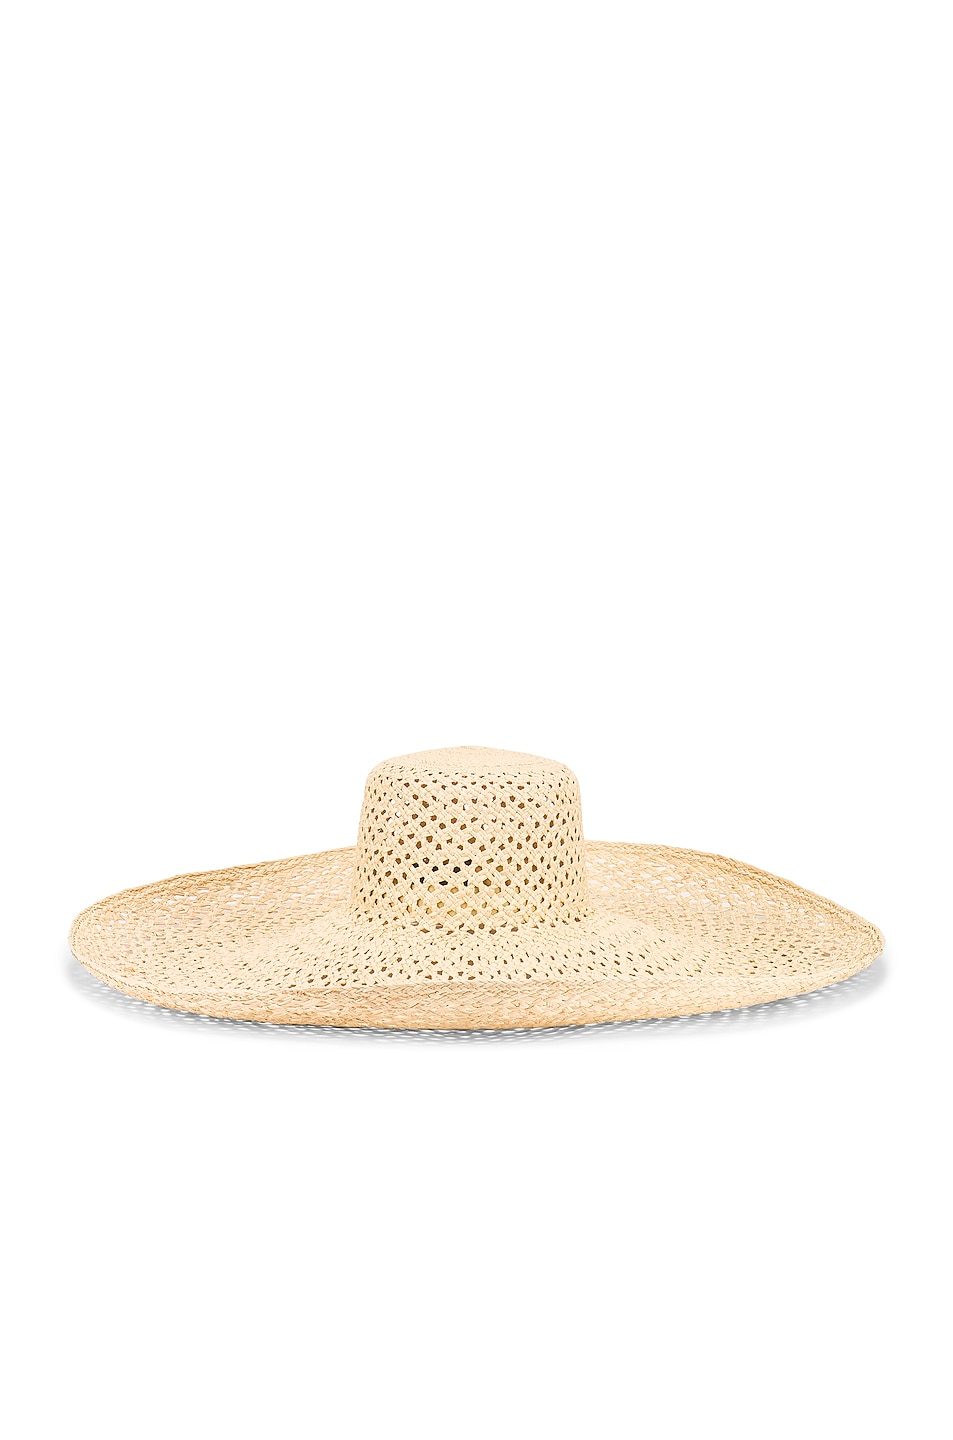 Image 1 of Lola Hats Pergola Hat in Natural